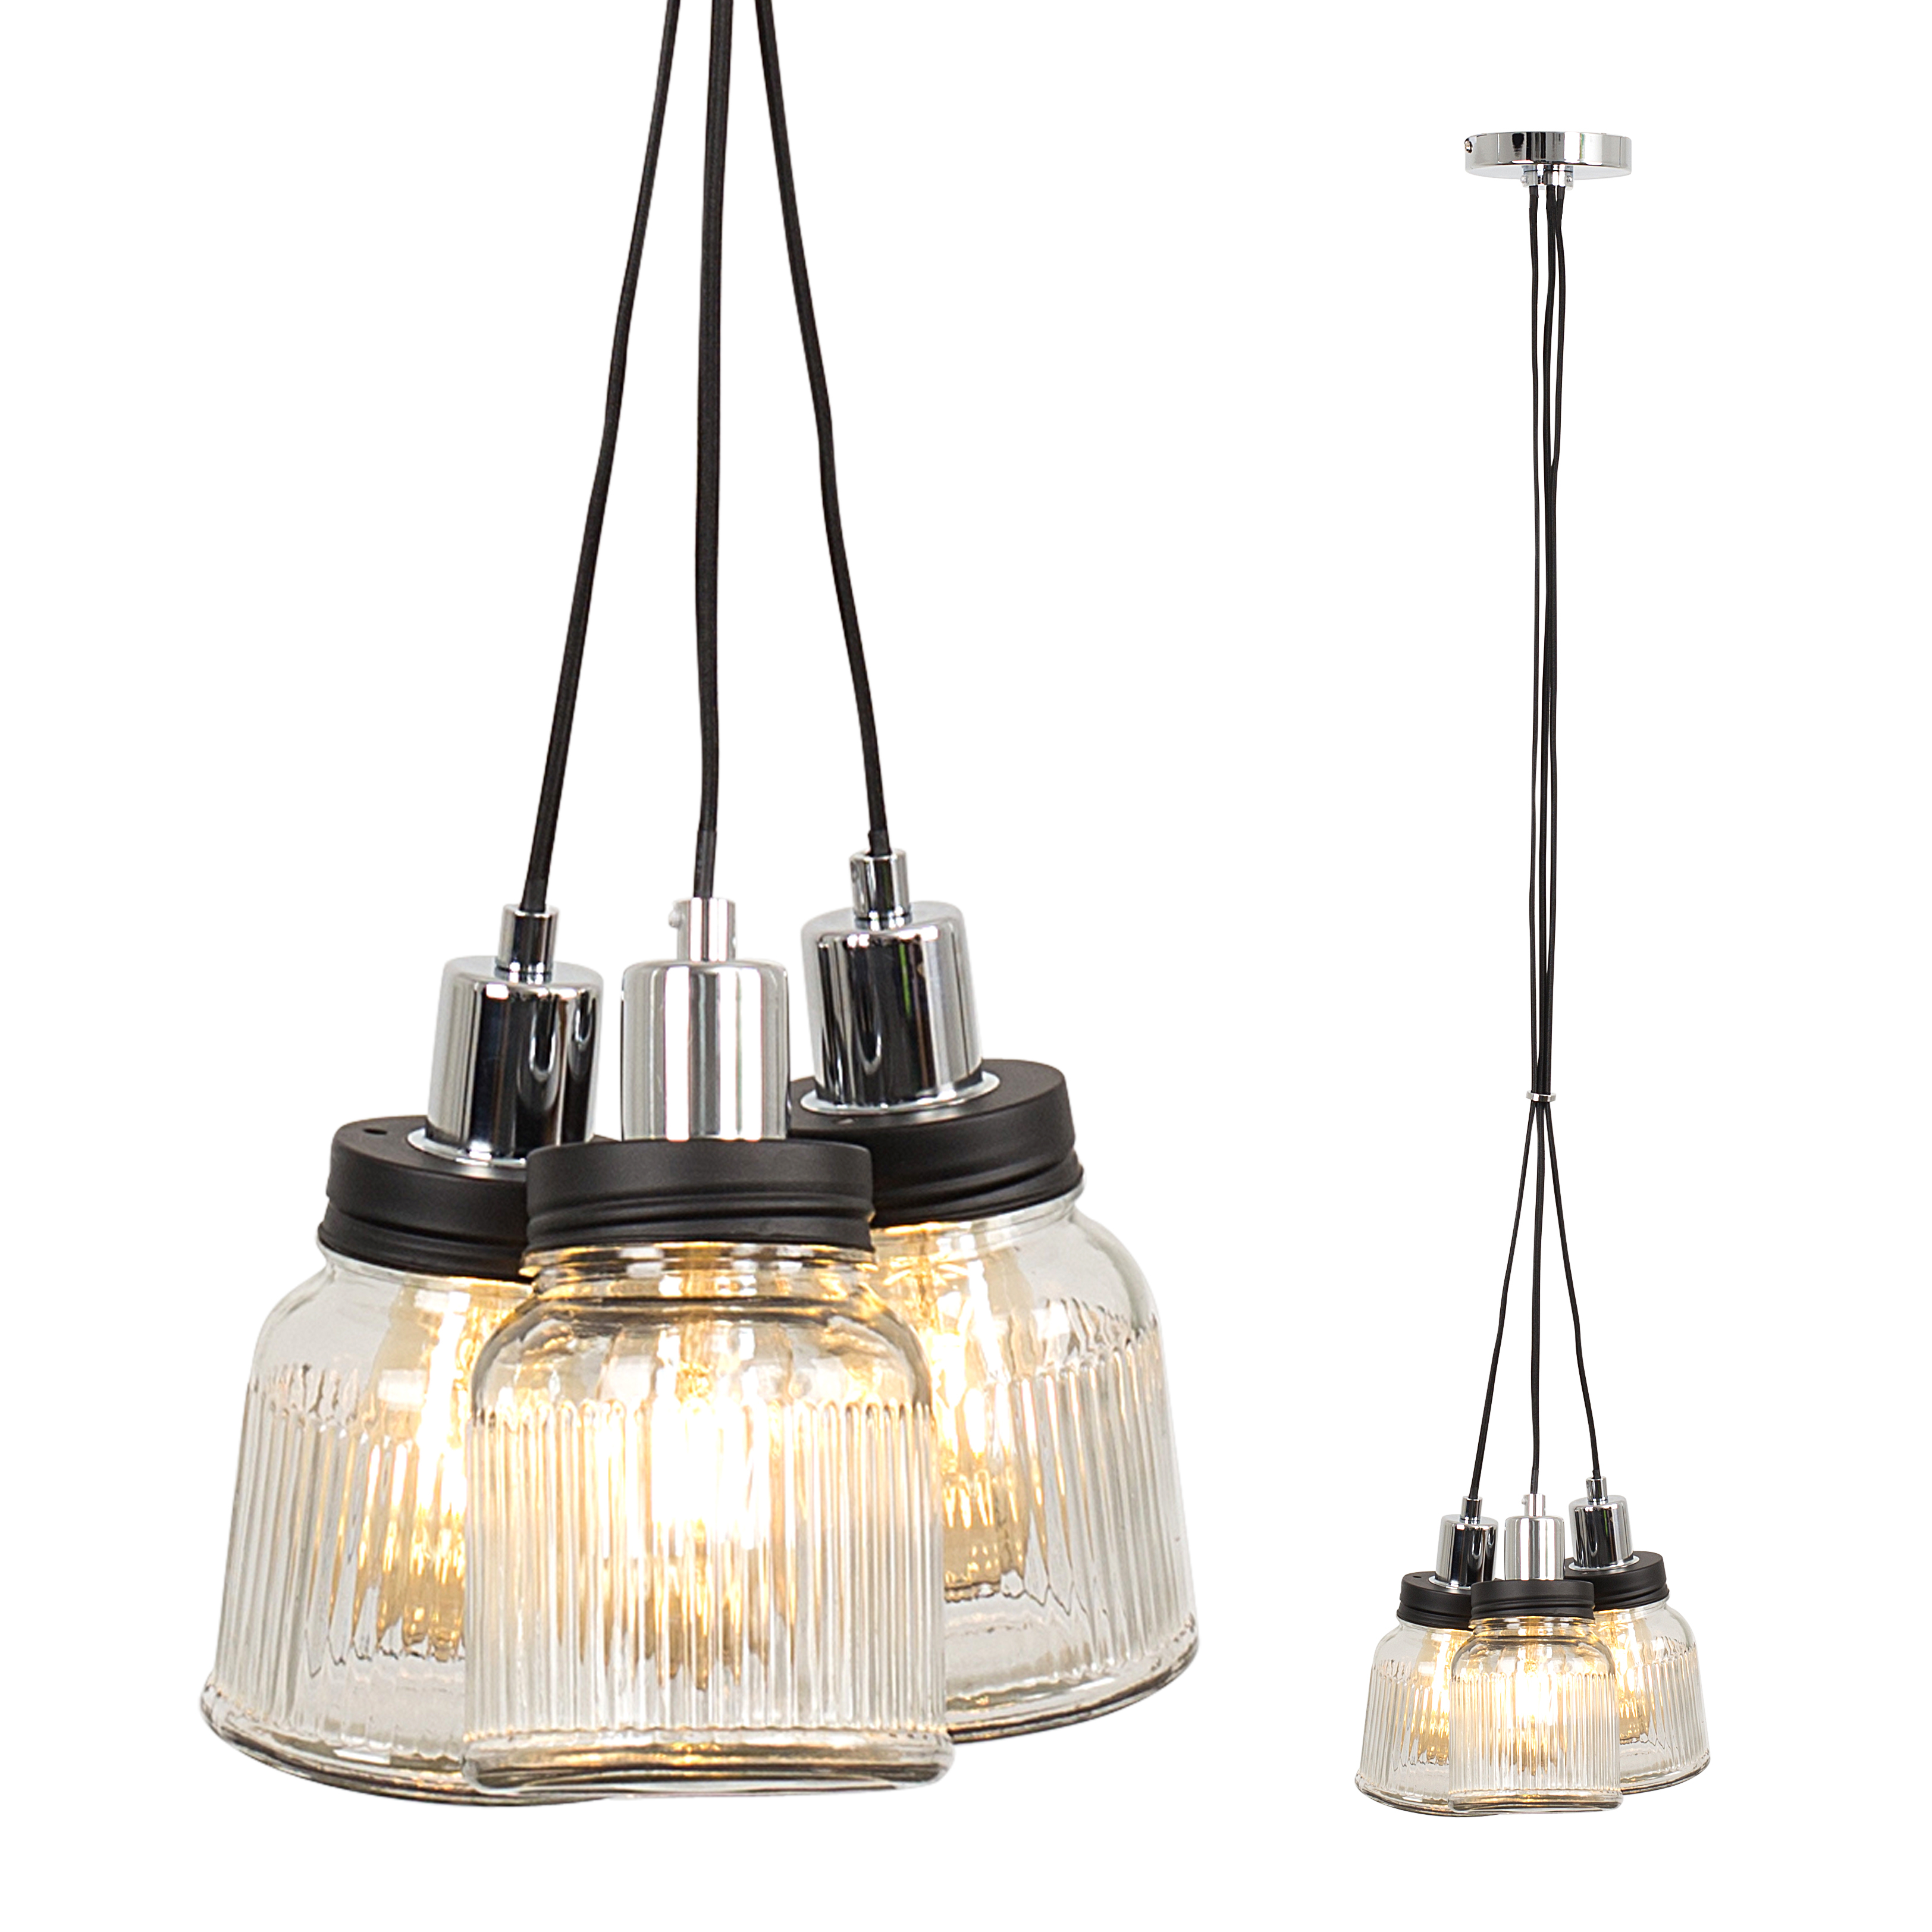 Eyre 3 Way Pendant in Chrome with Ribbed Glass Jars